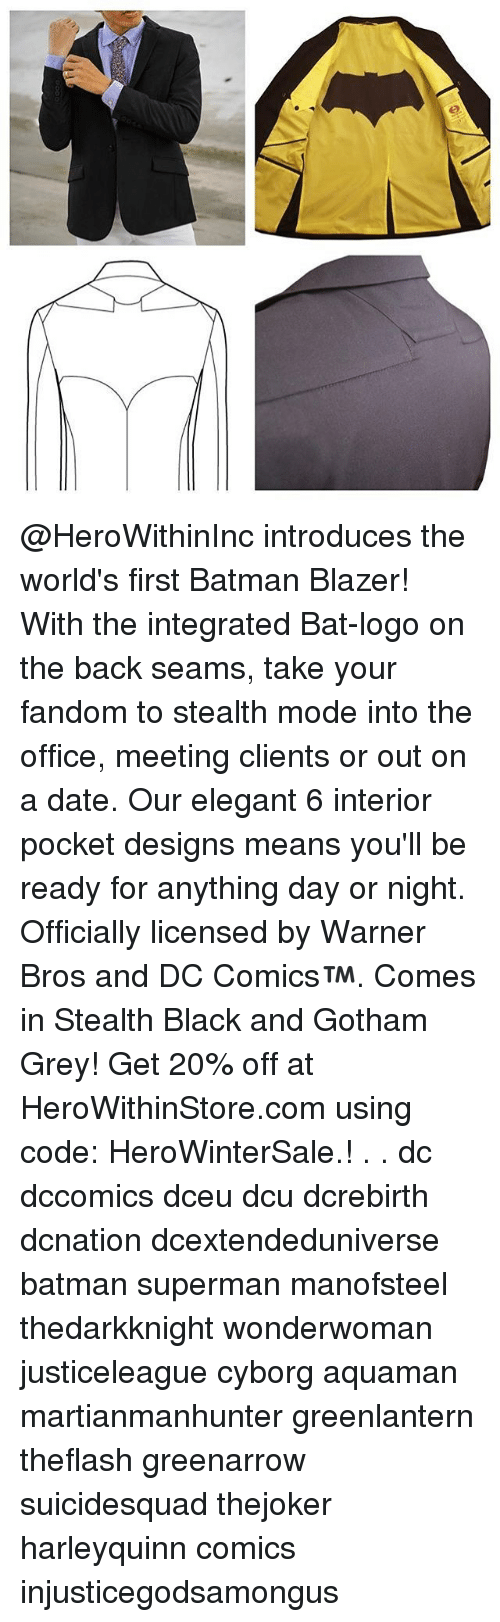 Memes, The Office, and Warner Bros.: て @HeroWithinInc introduces the world's first Batman Blazer! With the integrated Bat-logo on the back seams, take your fandom to stealth mode into the office, meeting clients or out on a date. Our elegant 6 interior pocket designs means you'll be ready for anything day or night. Officially licensed by Warner Bros and DC Comics™. Comes in Stealth Black and Gotham Grey! Get 20% off at HeroWithinStore.com using code: HeroWinterSale.! . . dc dccomics dceu dcu dcrebirth dcnation dcextendeduniverse batman superman manofsteel thedarkknight wonderwoman justiceleague cyborg aquaman martianmanhunter greenlantern theflash greenarrow suicidesquad thejoker harleyquinn comics injusticegodsamongus